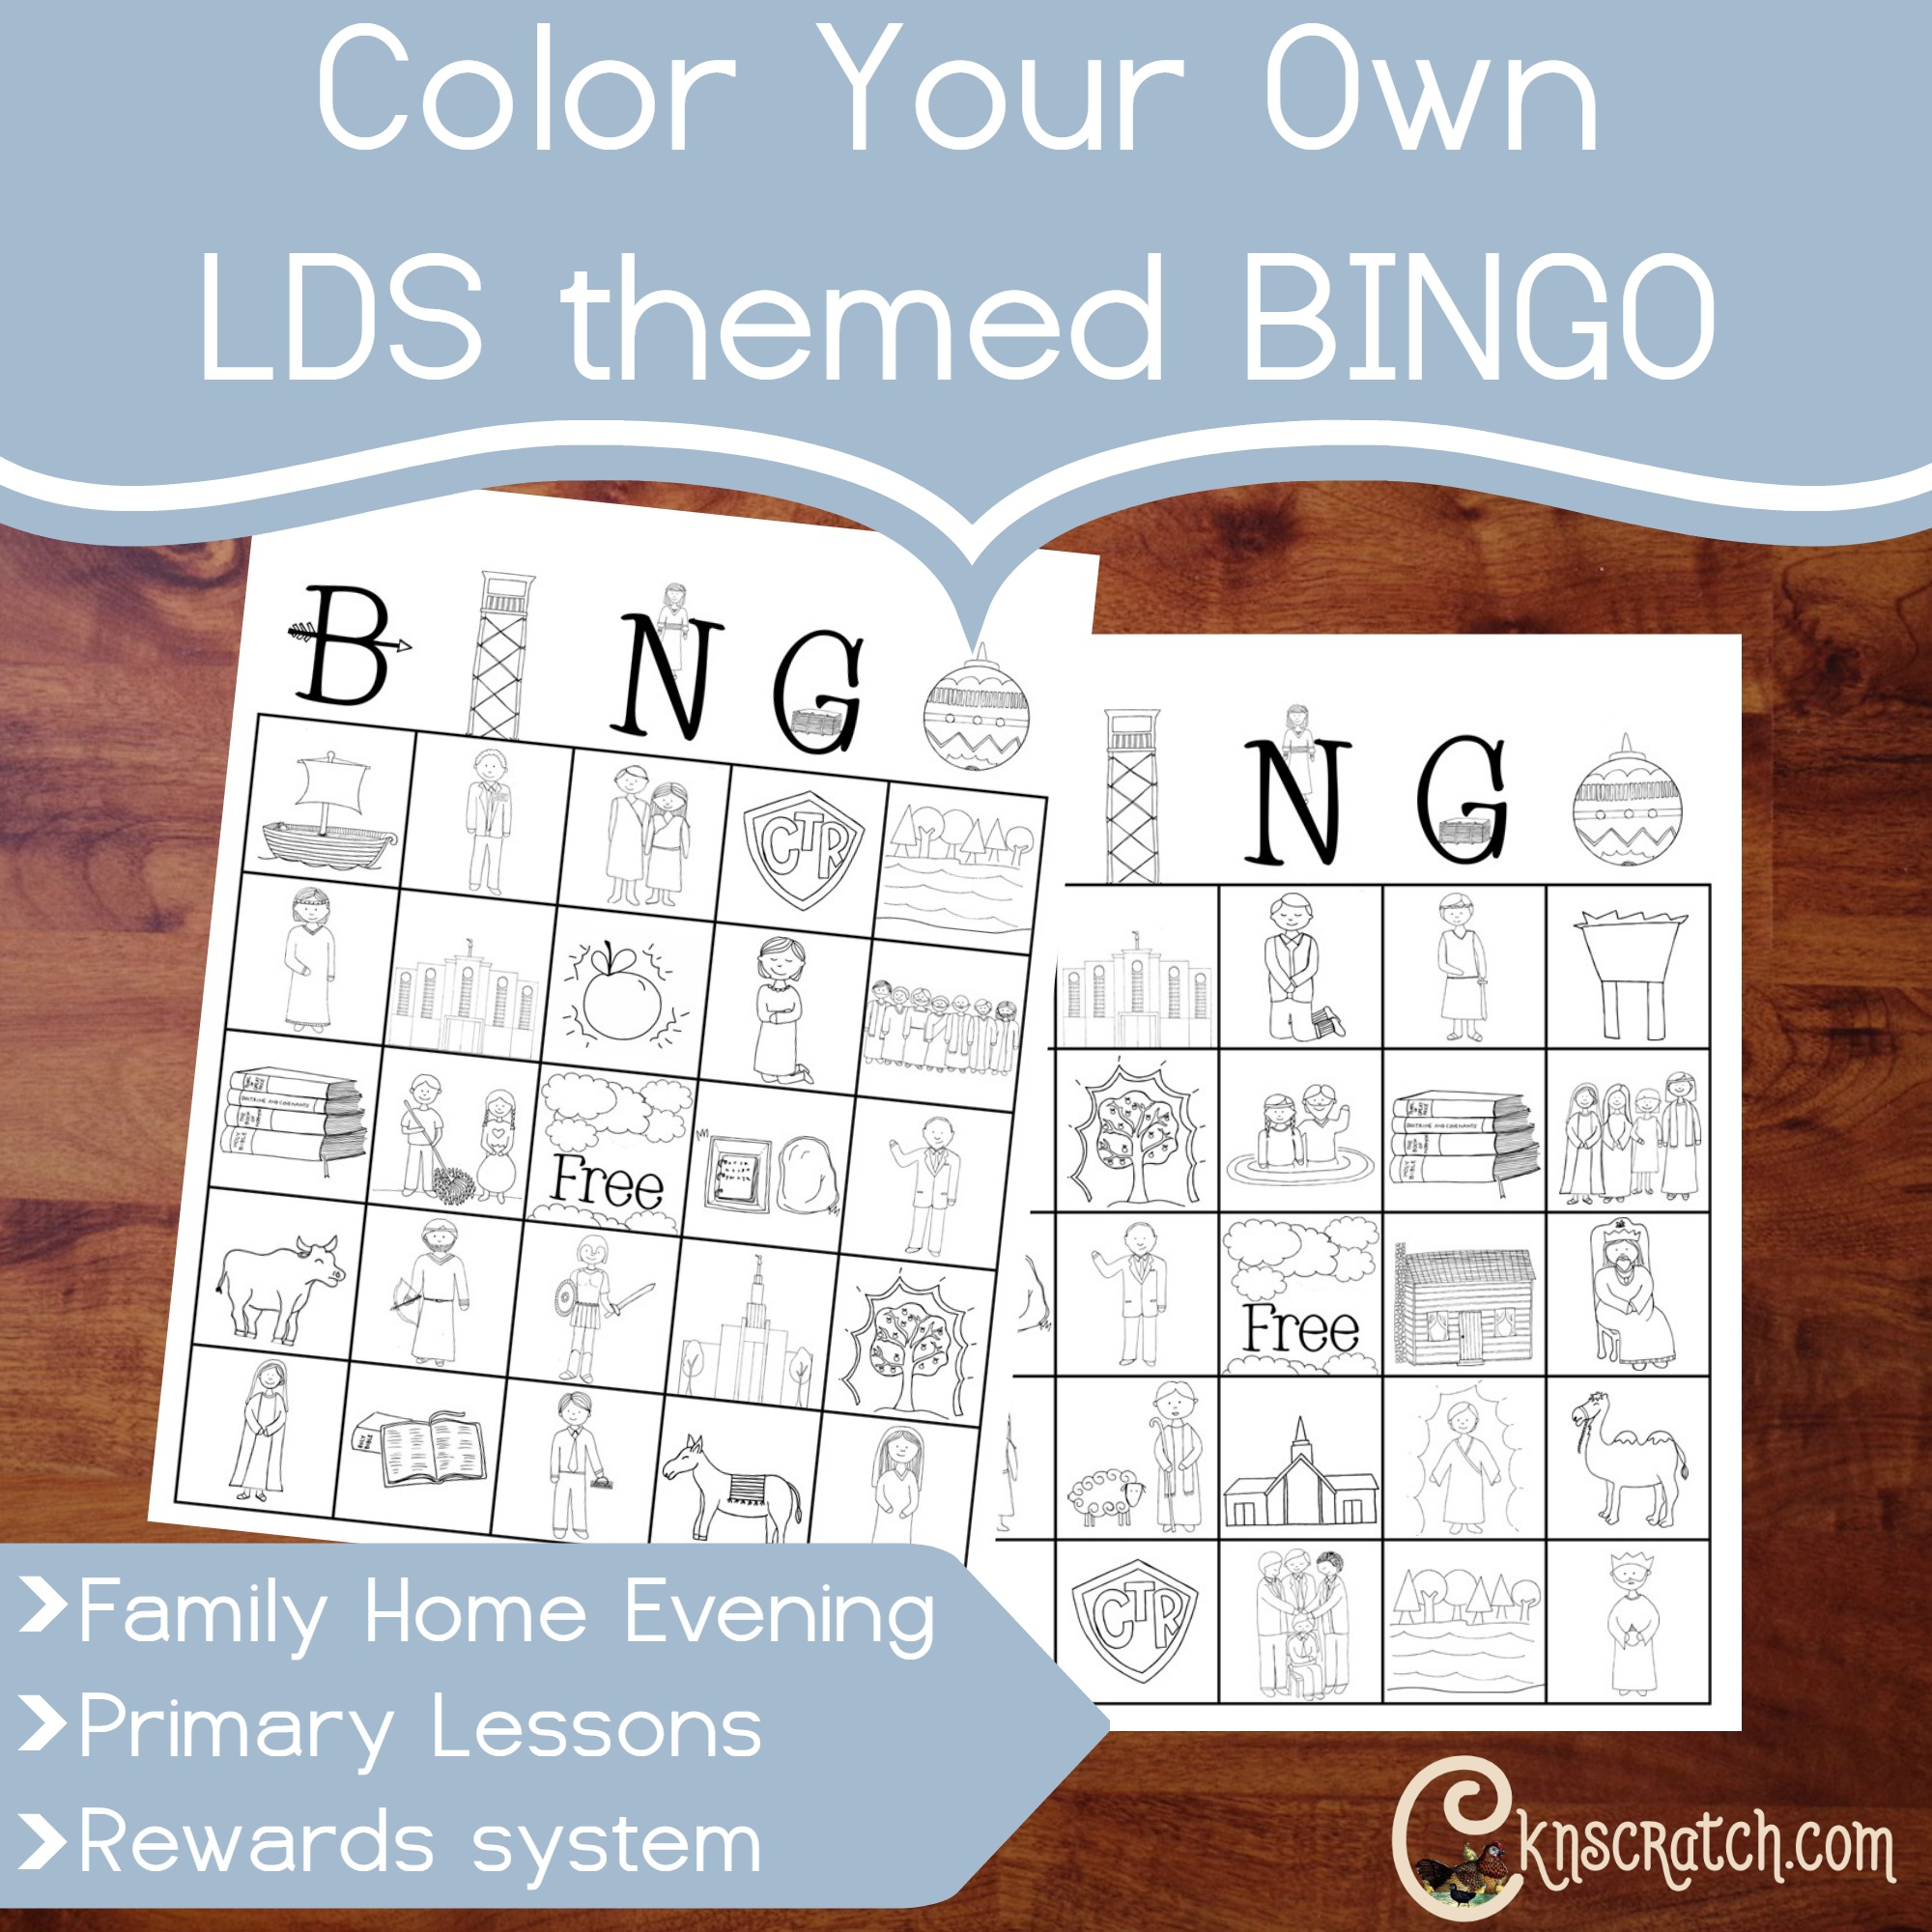 Free printable lds family home evening clipart free download Color Your Own LDS Themed Bingo - Printable free download